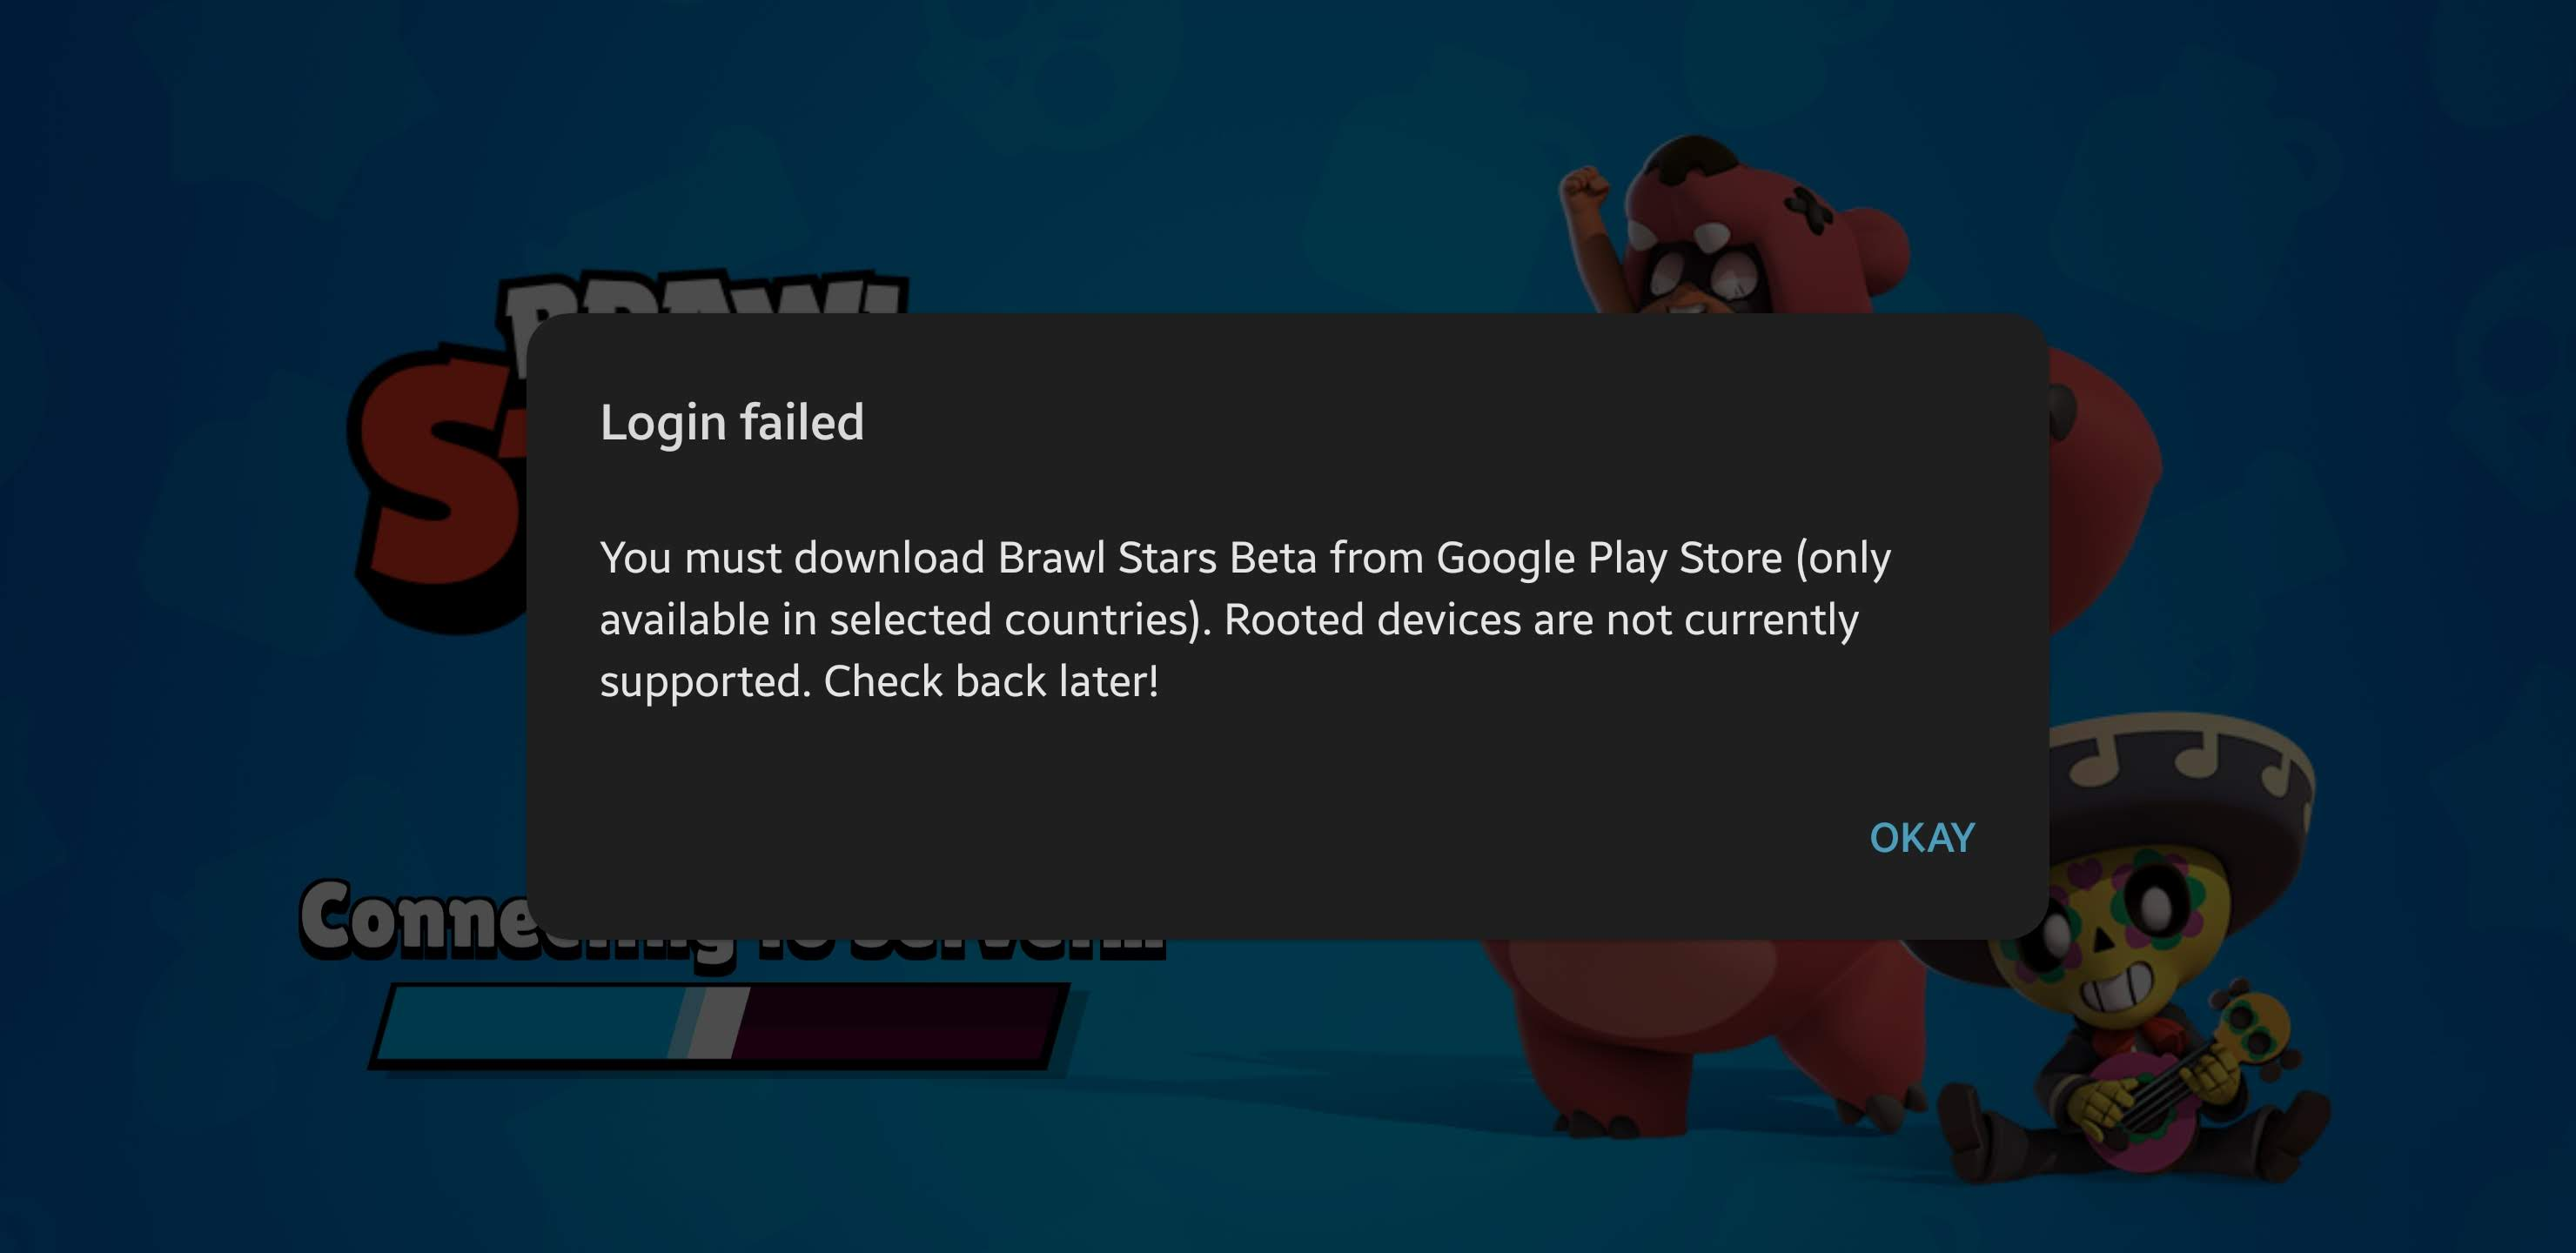 How to Fix Brawl Stars Apk Android Login Failed Error